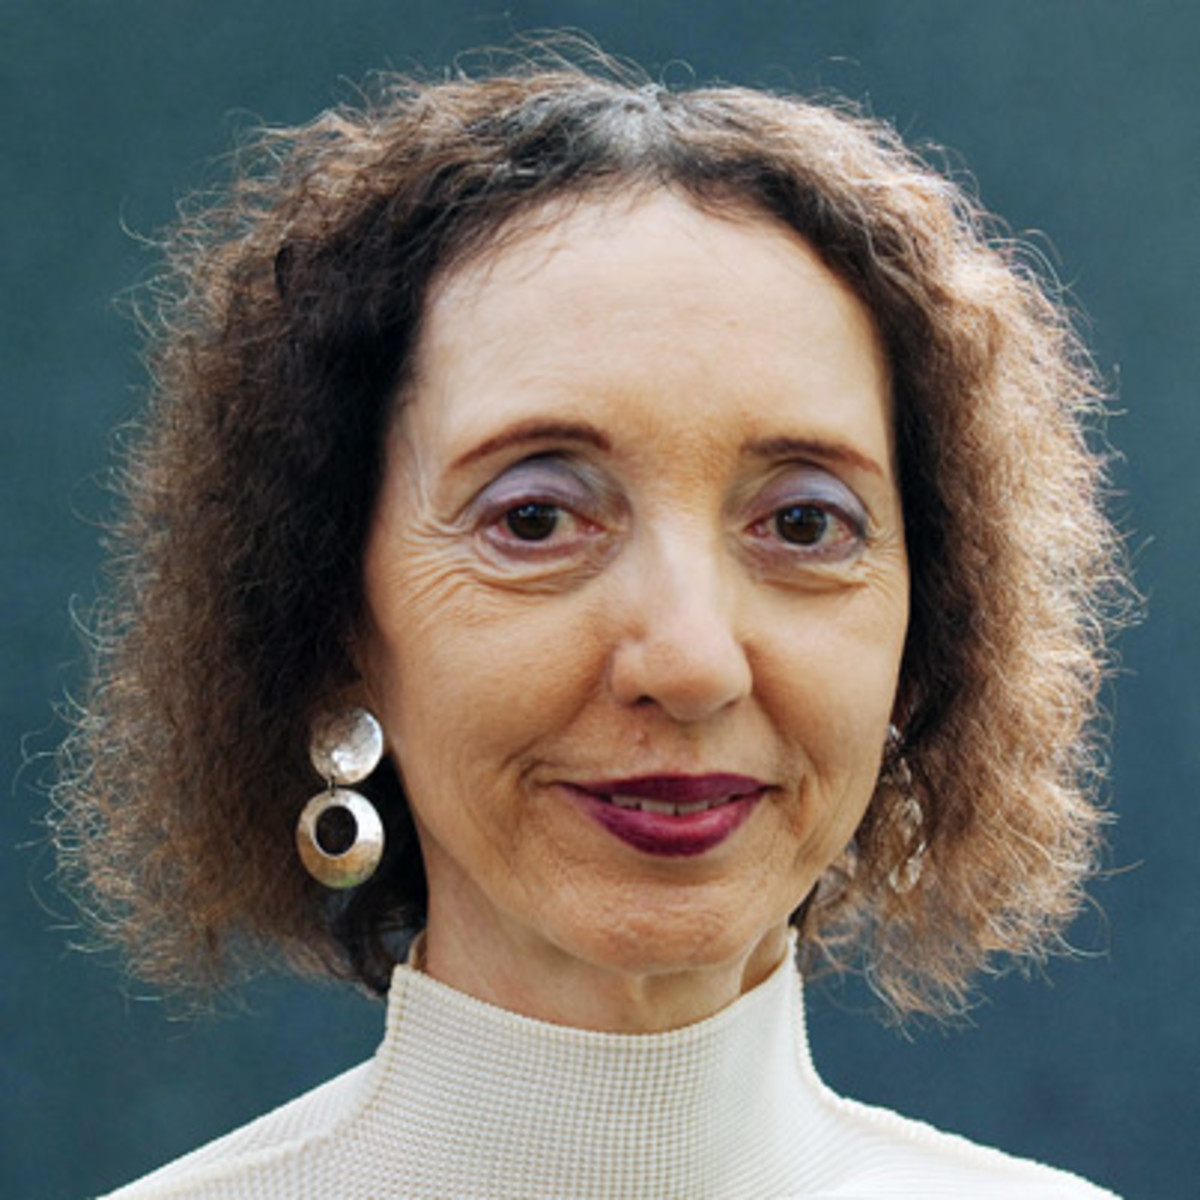 life after high school joyce carol oates essays About the author-born in lockport, new york (june 16, 1938) - the area suffered the hardships of the great depression, but joyce carol oates spent her life on a farm, writing novel after novel throughout her high school and college career.